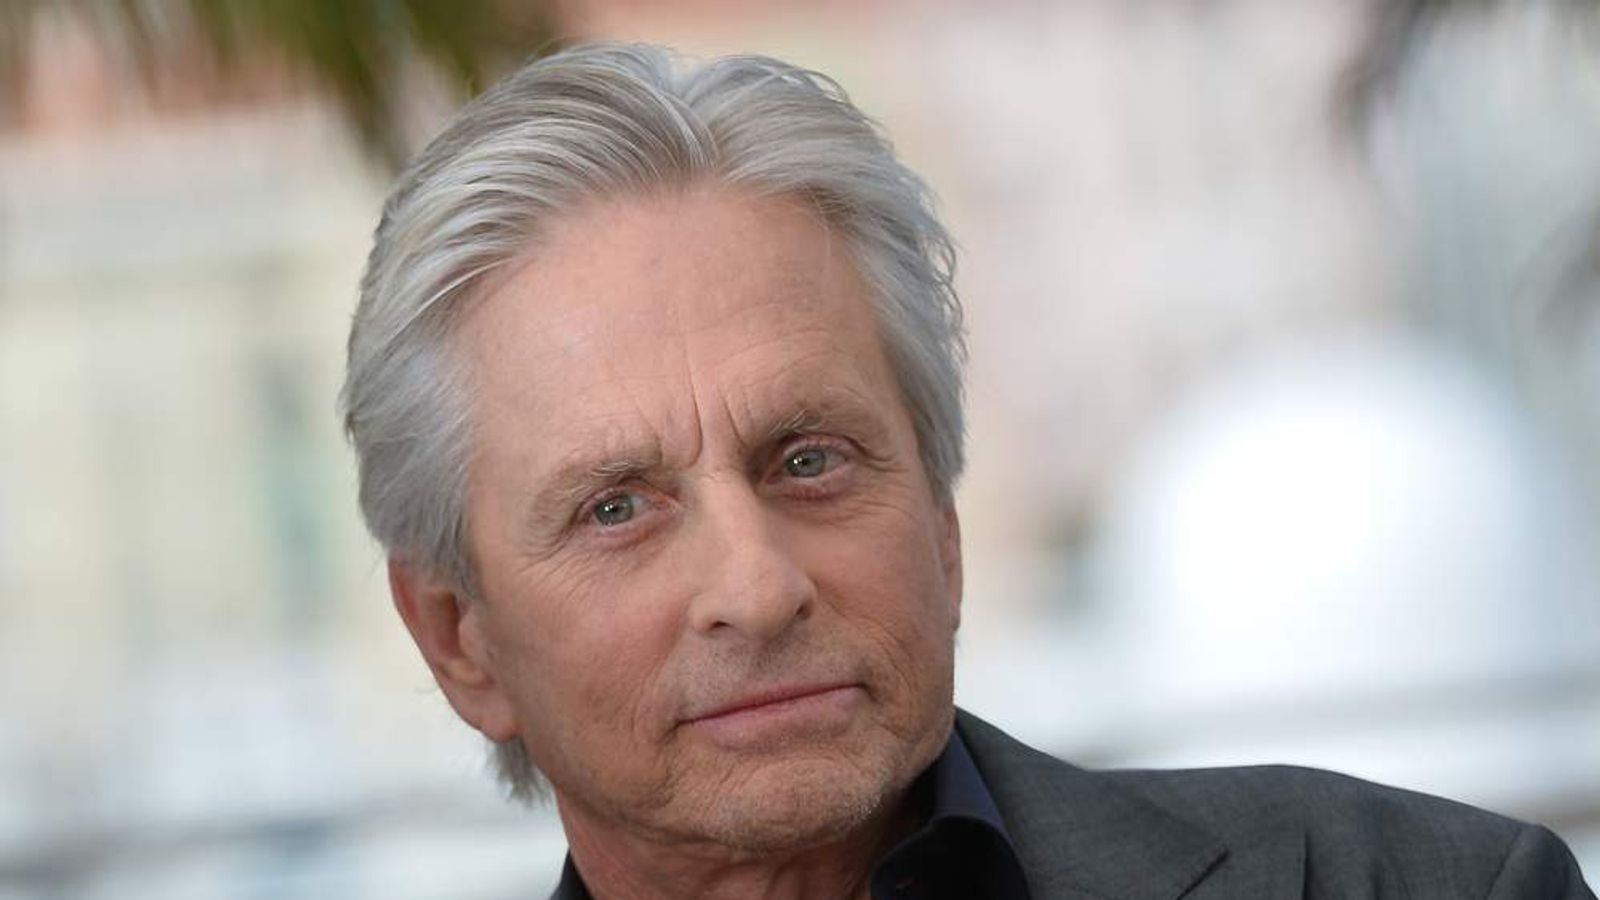 Hollywood actor Michael Douglas